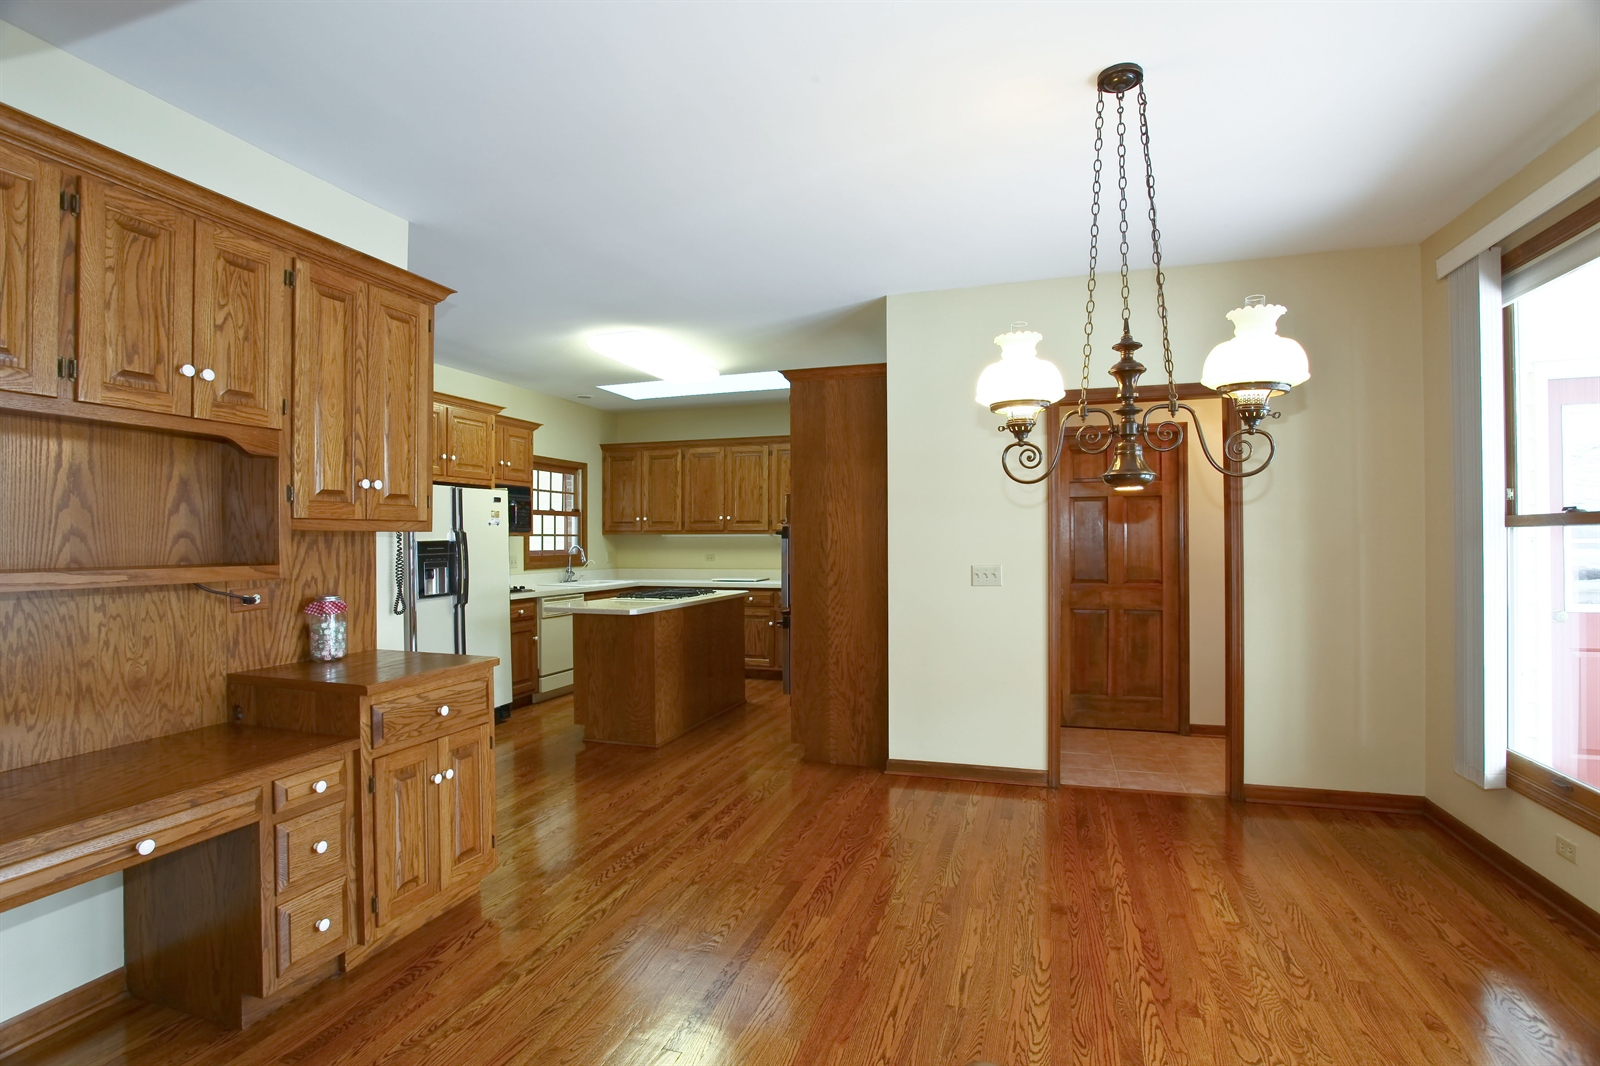 Real Estate Photography - 1S720 Alsace Court, Winfield, IL, 60190 - Kitchen / Breakfast Room